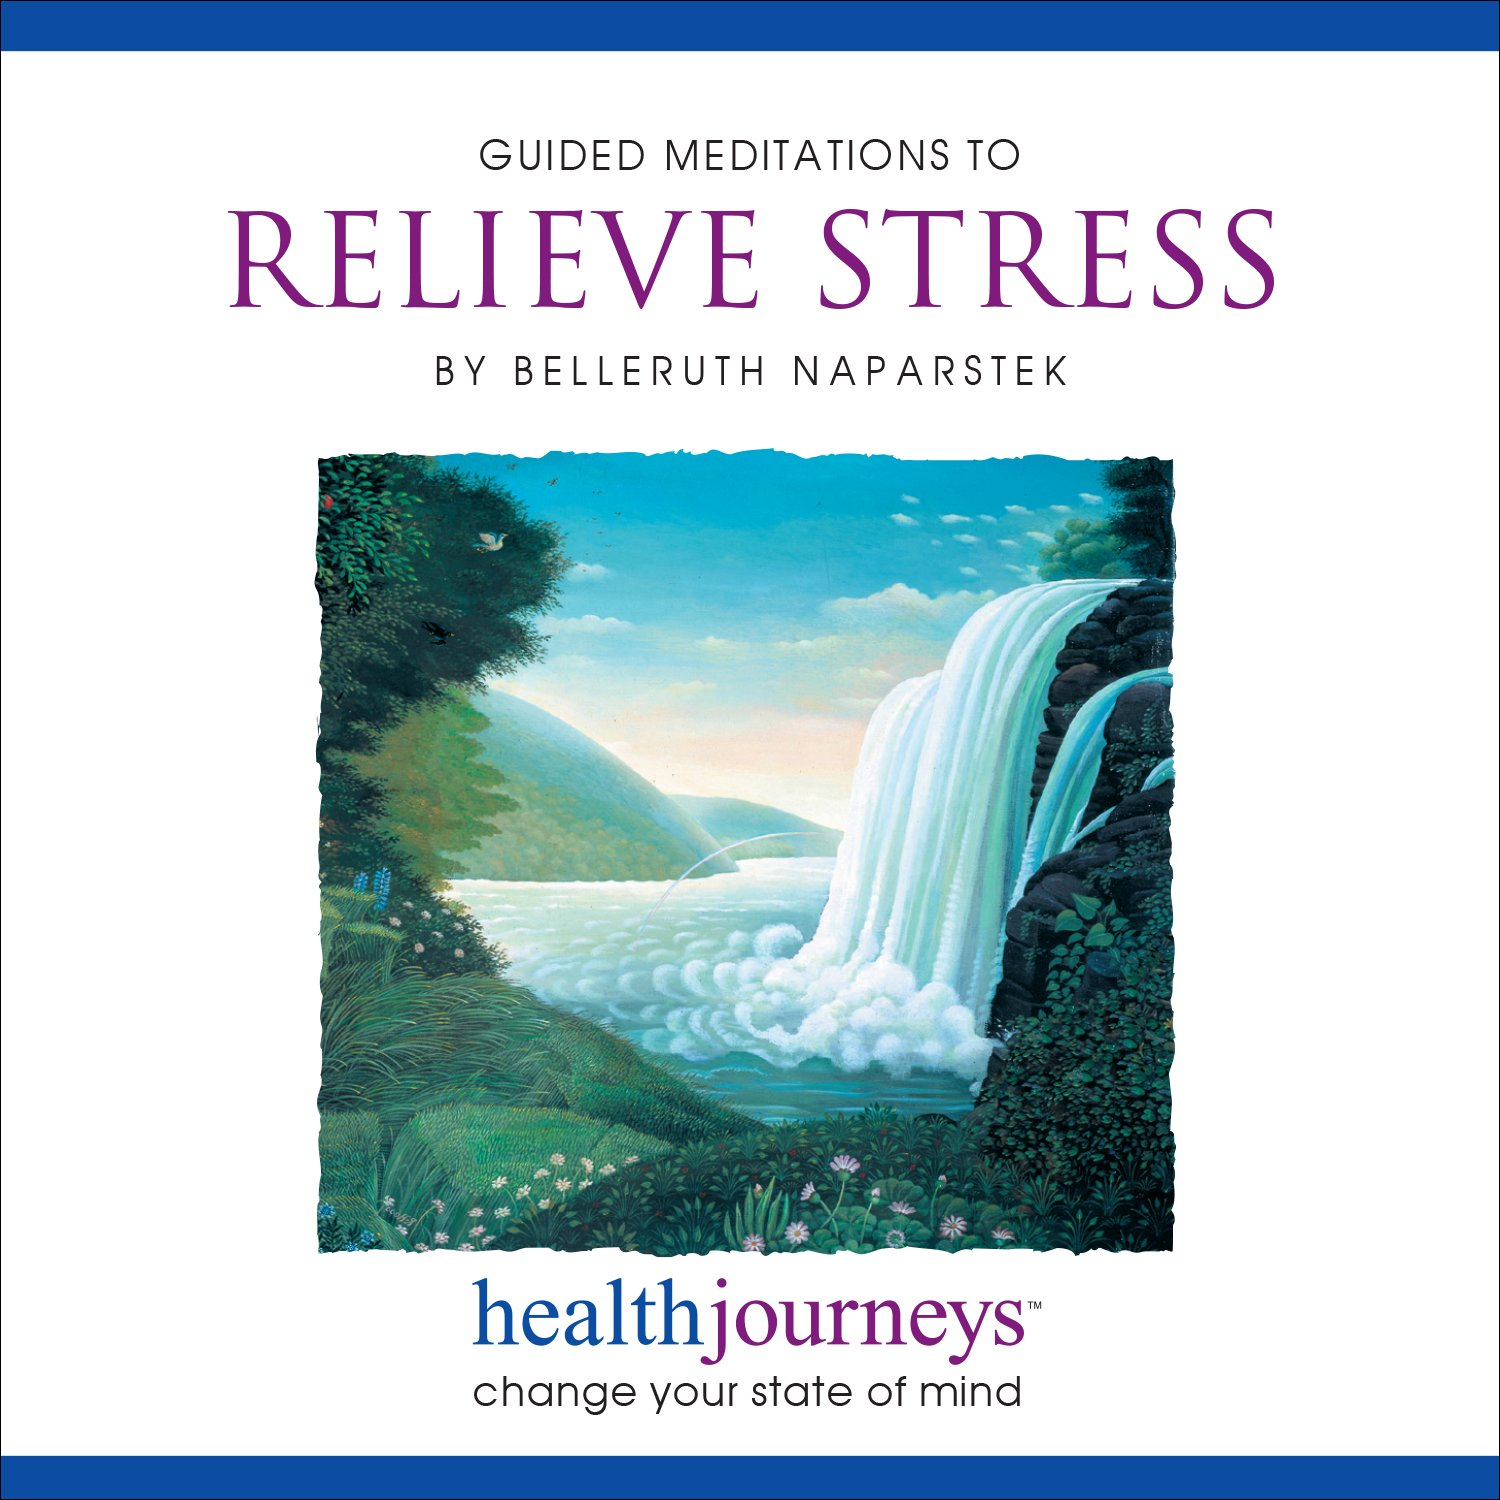 Meditations to Relieve Stress, Four Holistic Exercises to to Reduce Stress for Everyone, Guided Meditation and Imagery with Healing Words and Soothing Music by Belleruth Naparstek by Brand: Health Journeys